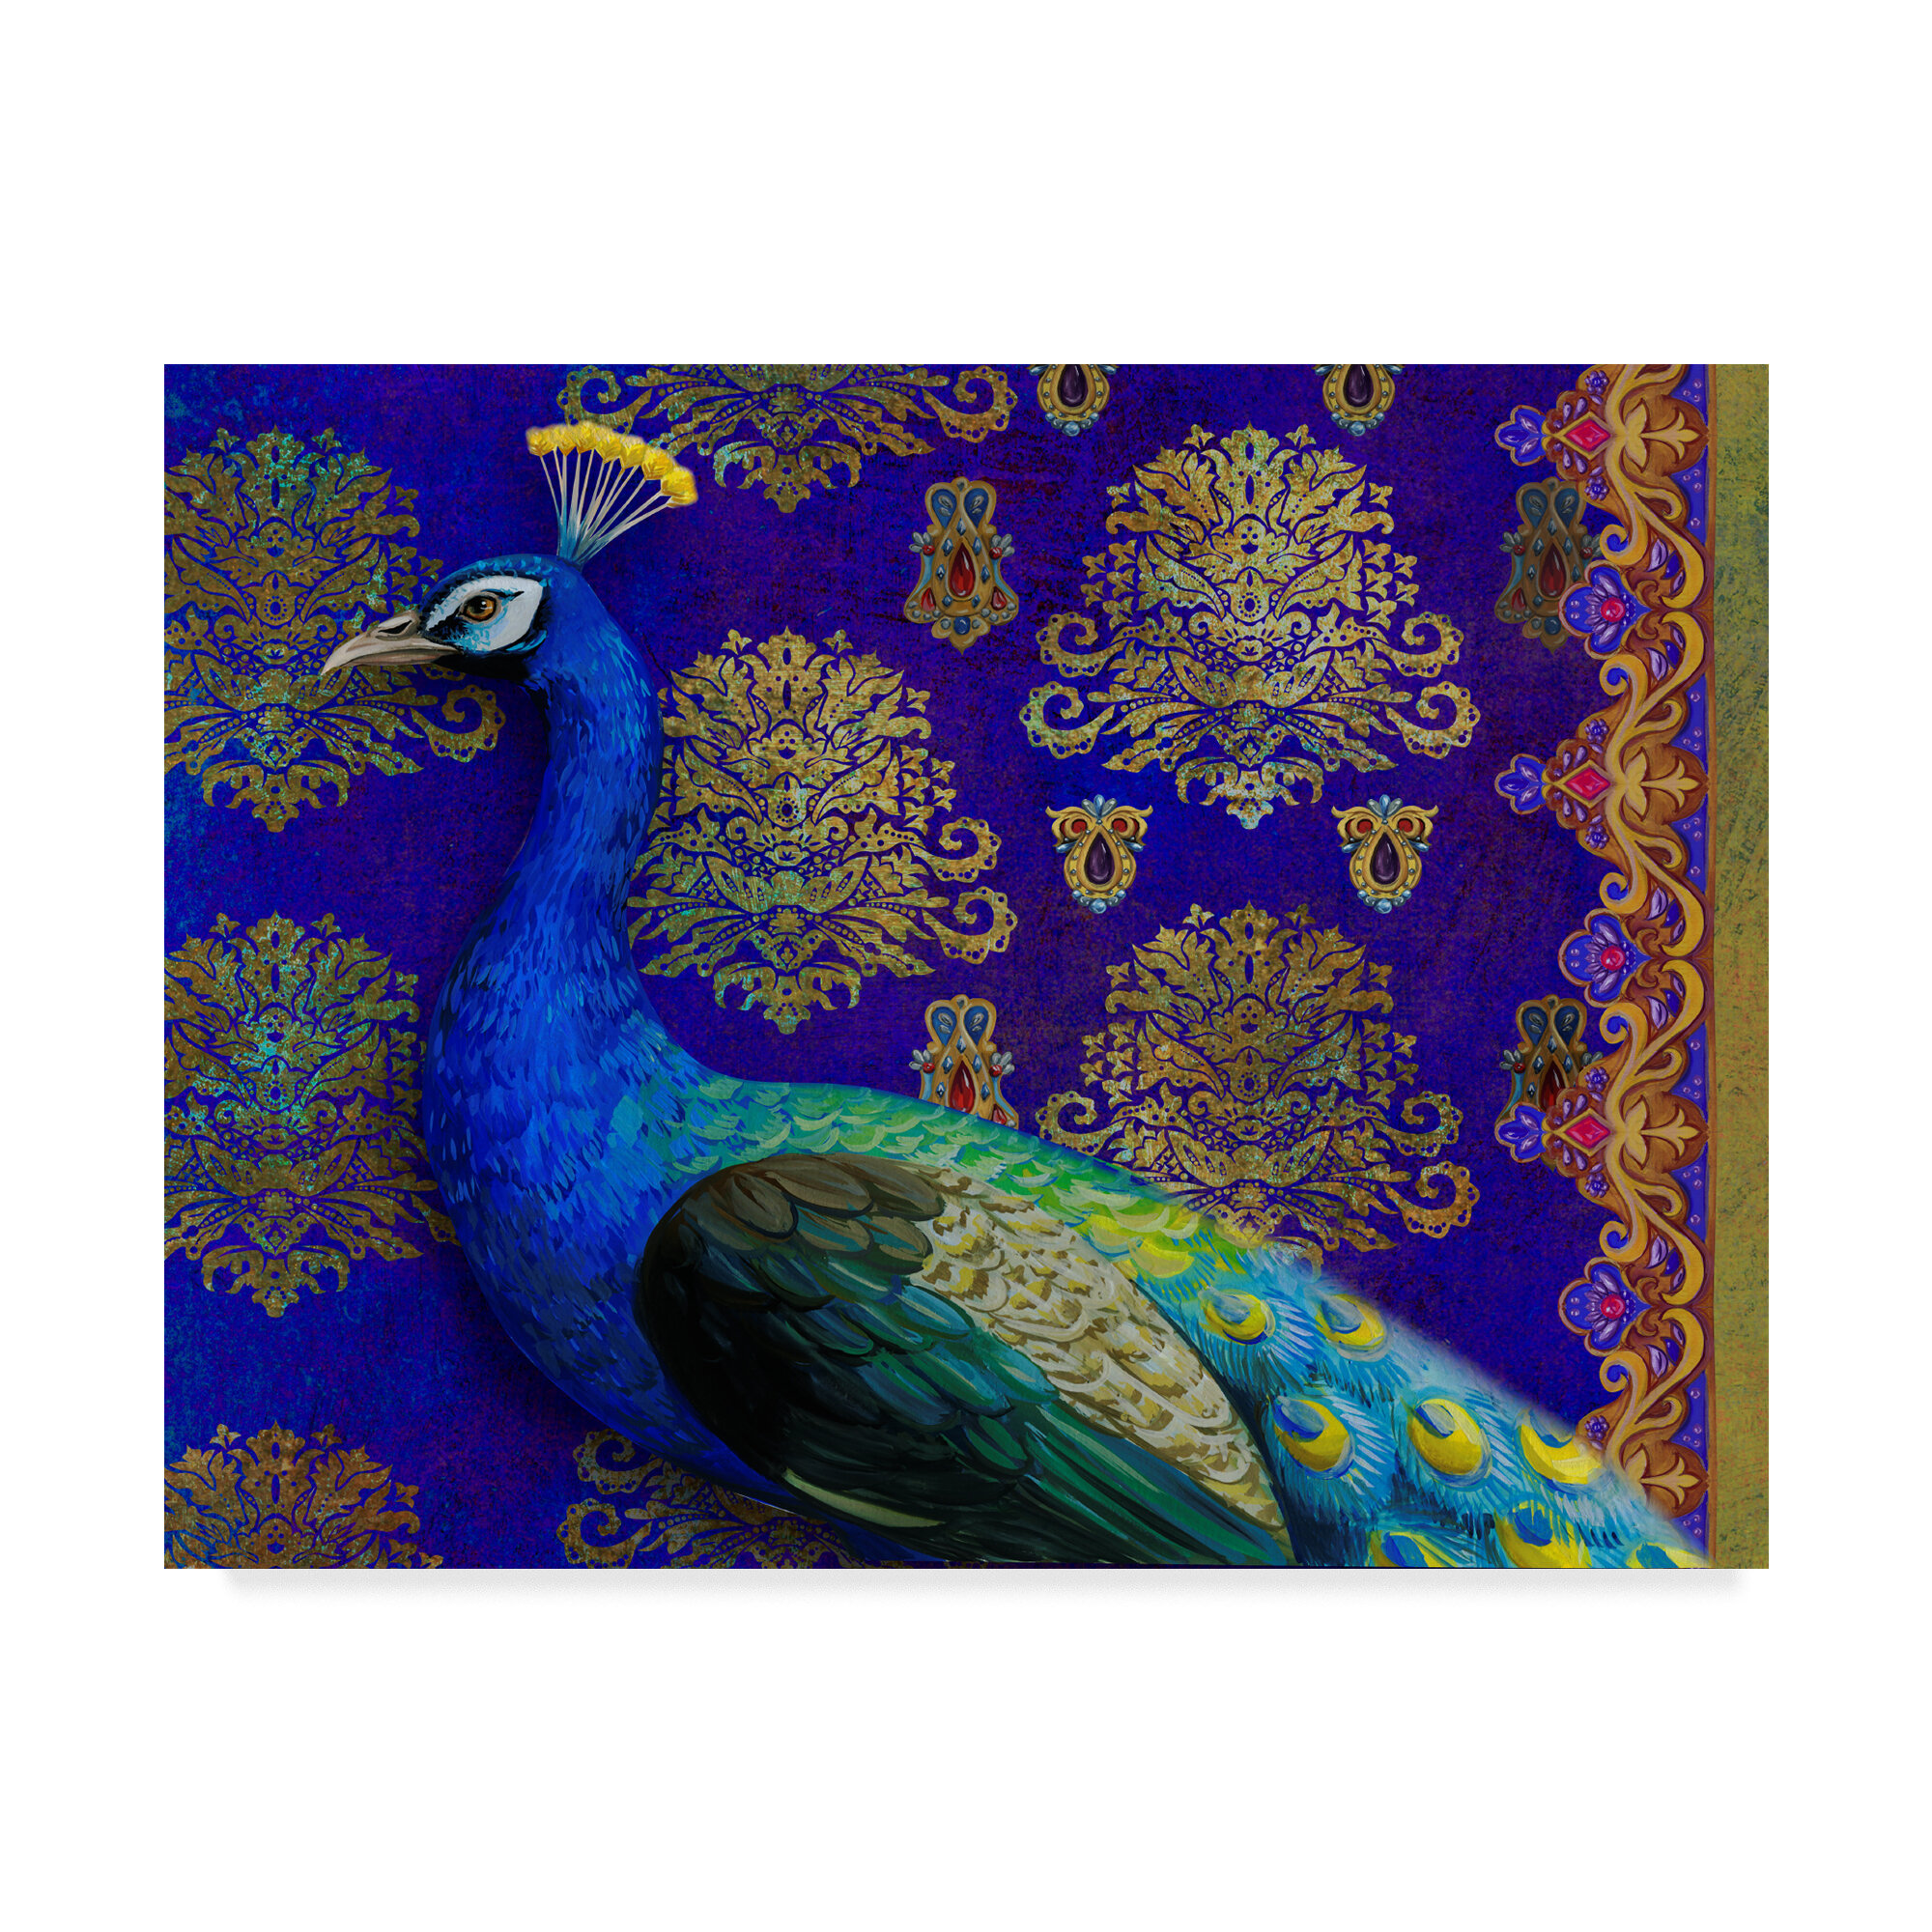 Trademark Art Indian Peacock Graphic Art Print On Wrapped Canvas Reviews Wayfair